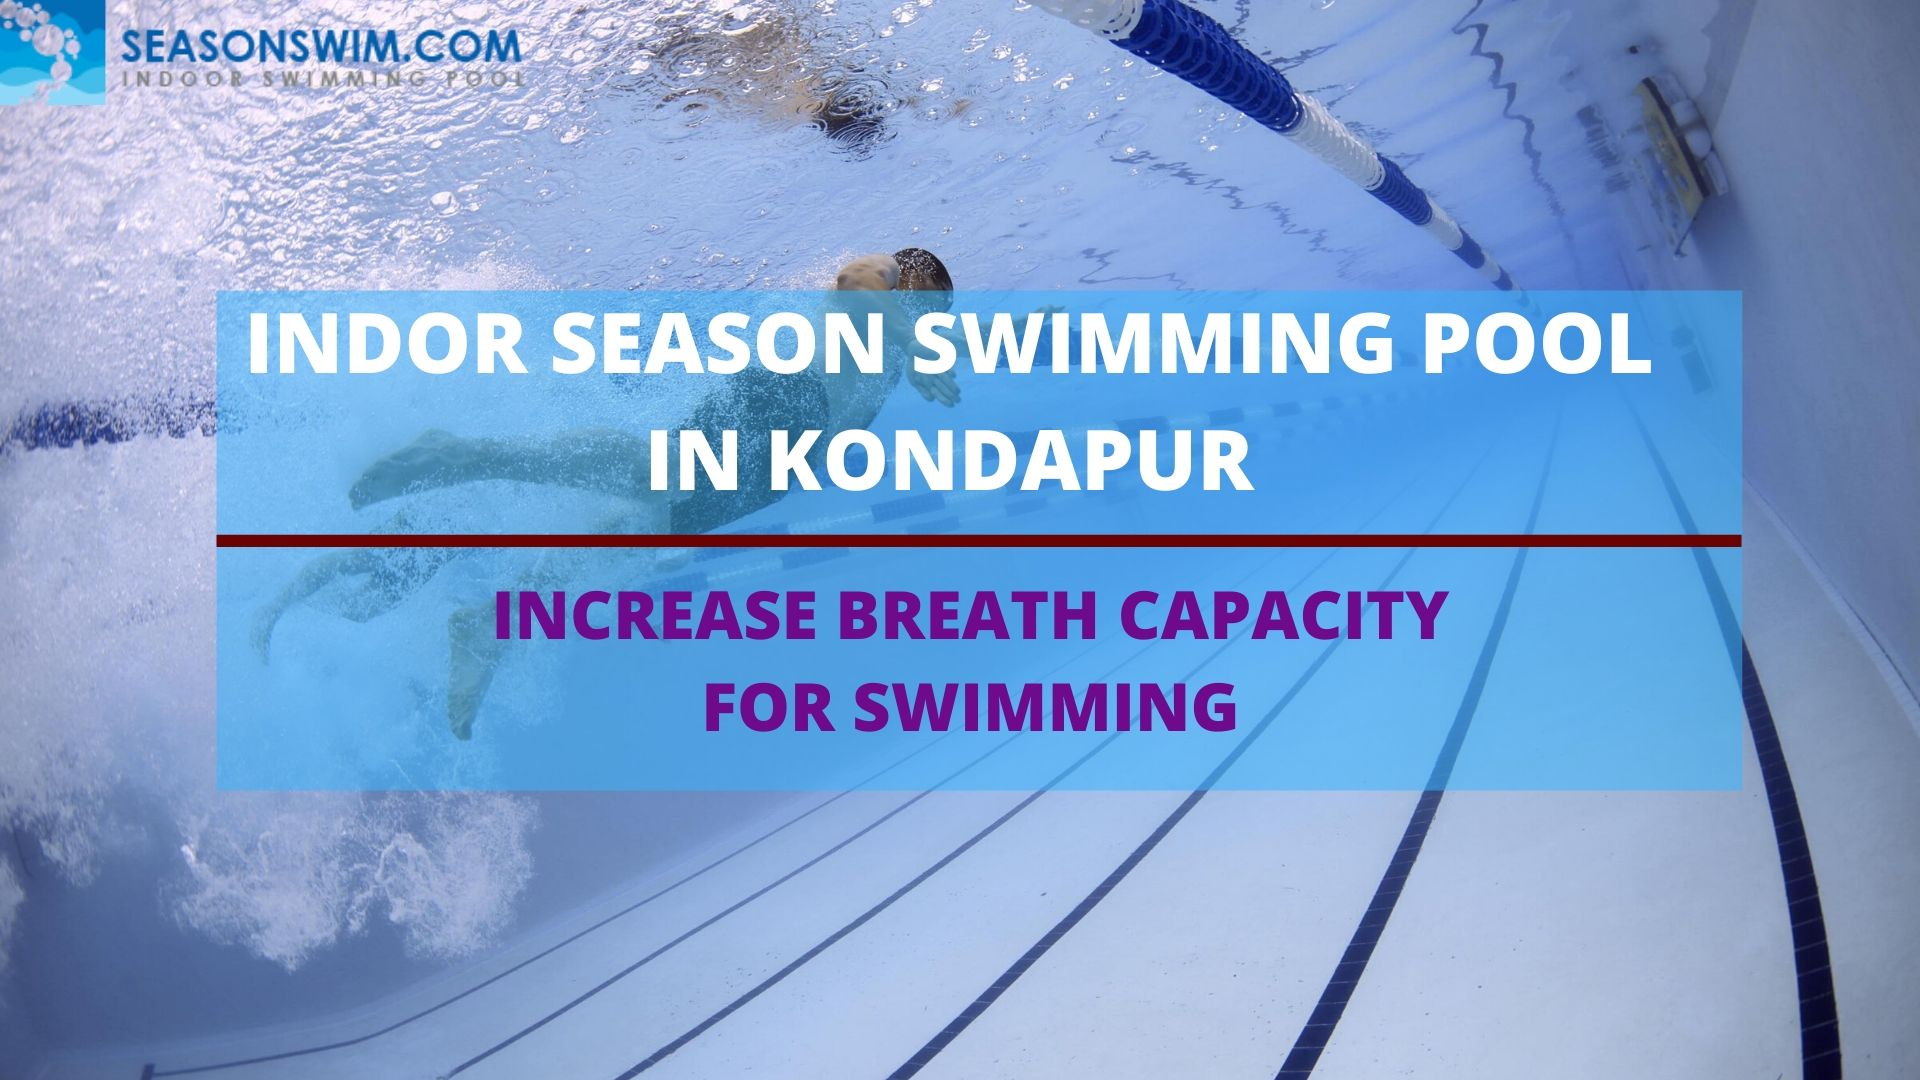 Increase breath capacity for swimming